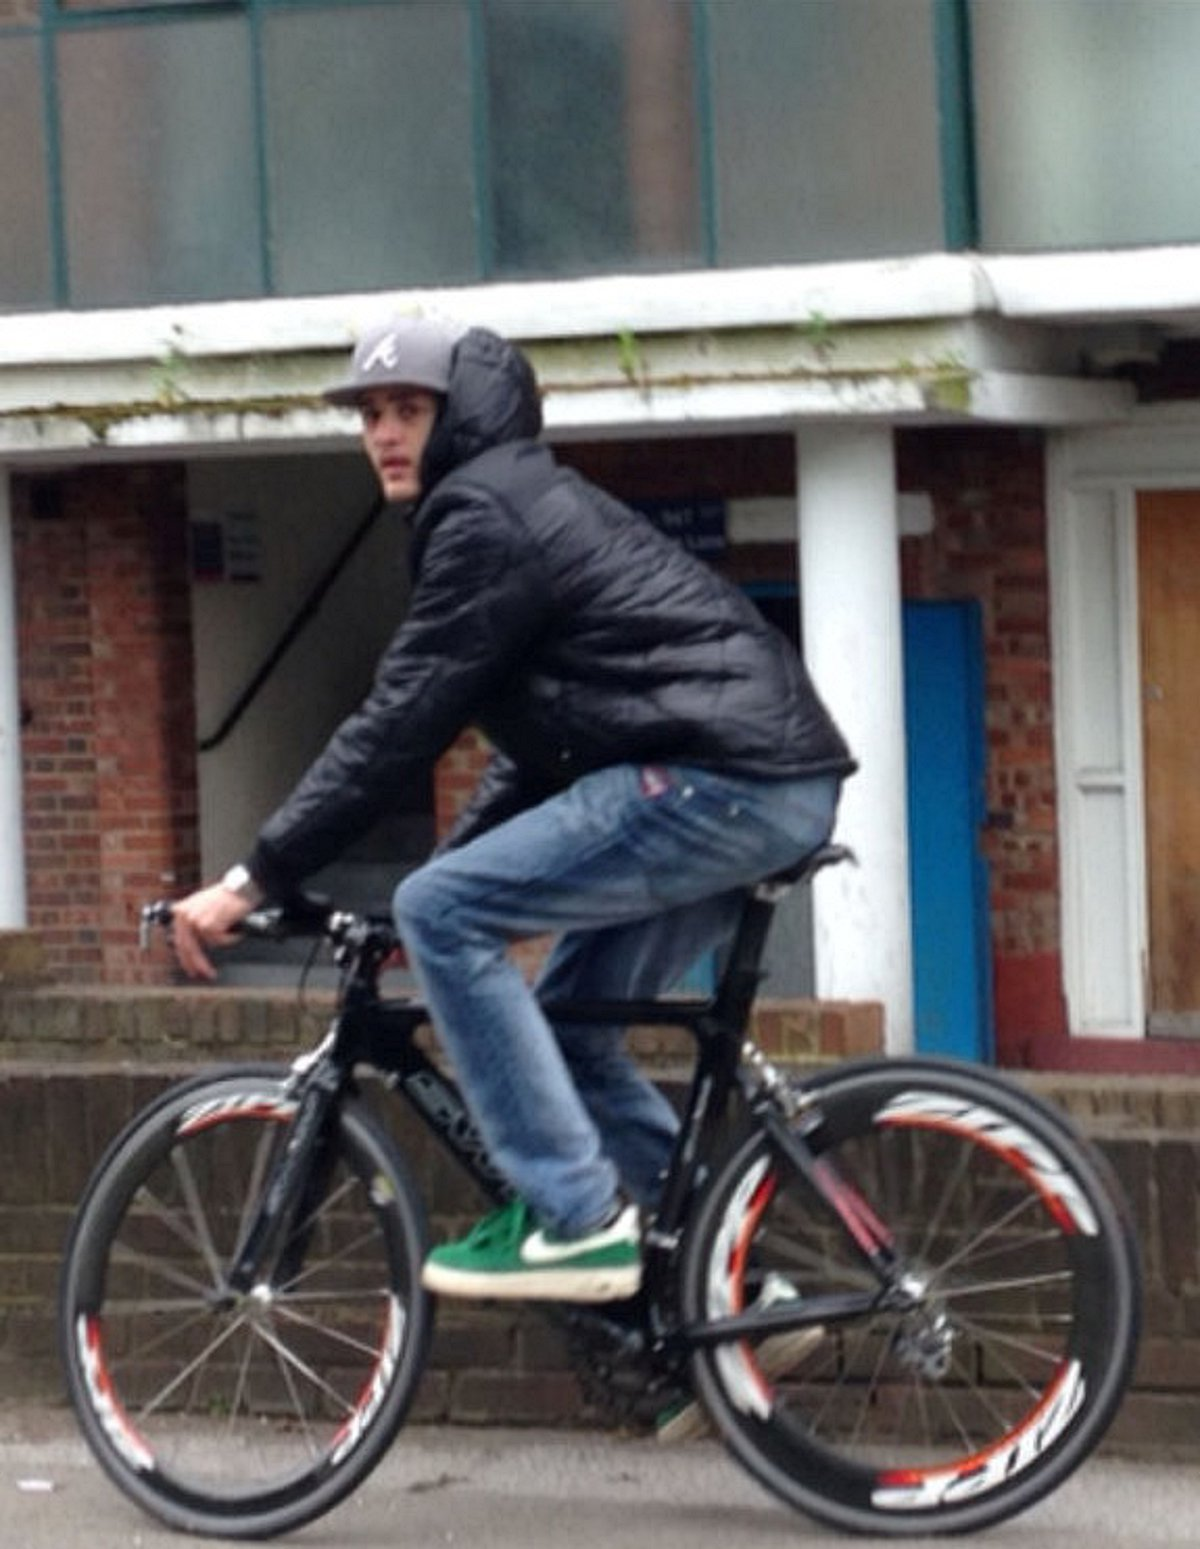 Picture of stolen championship bike being raced through Hither Green goes viral